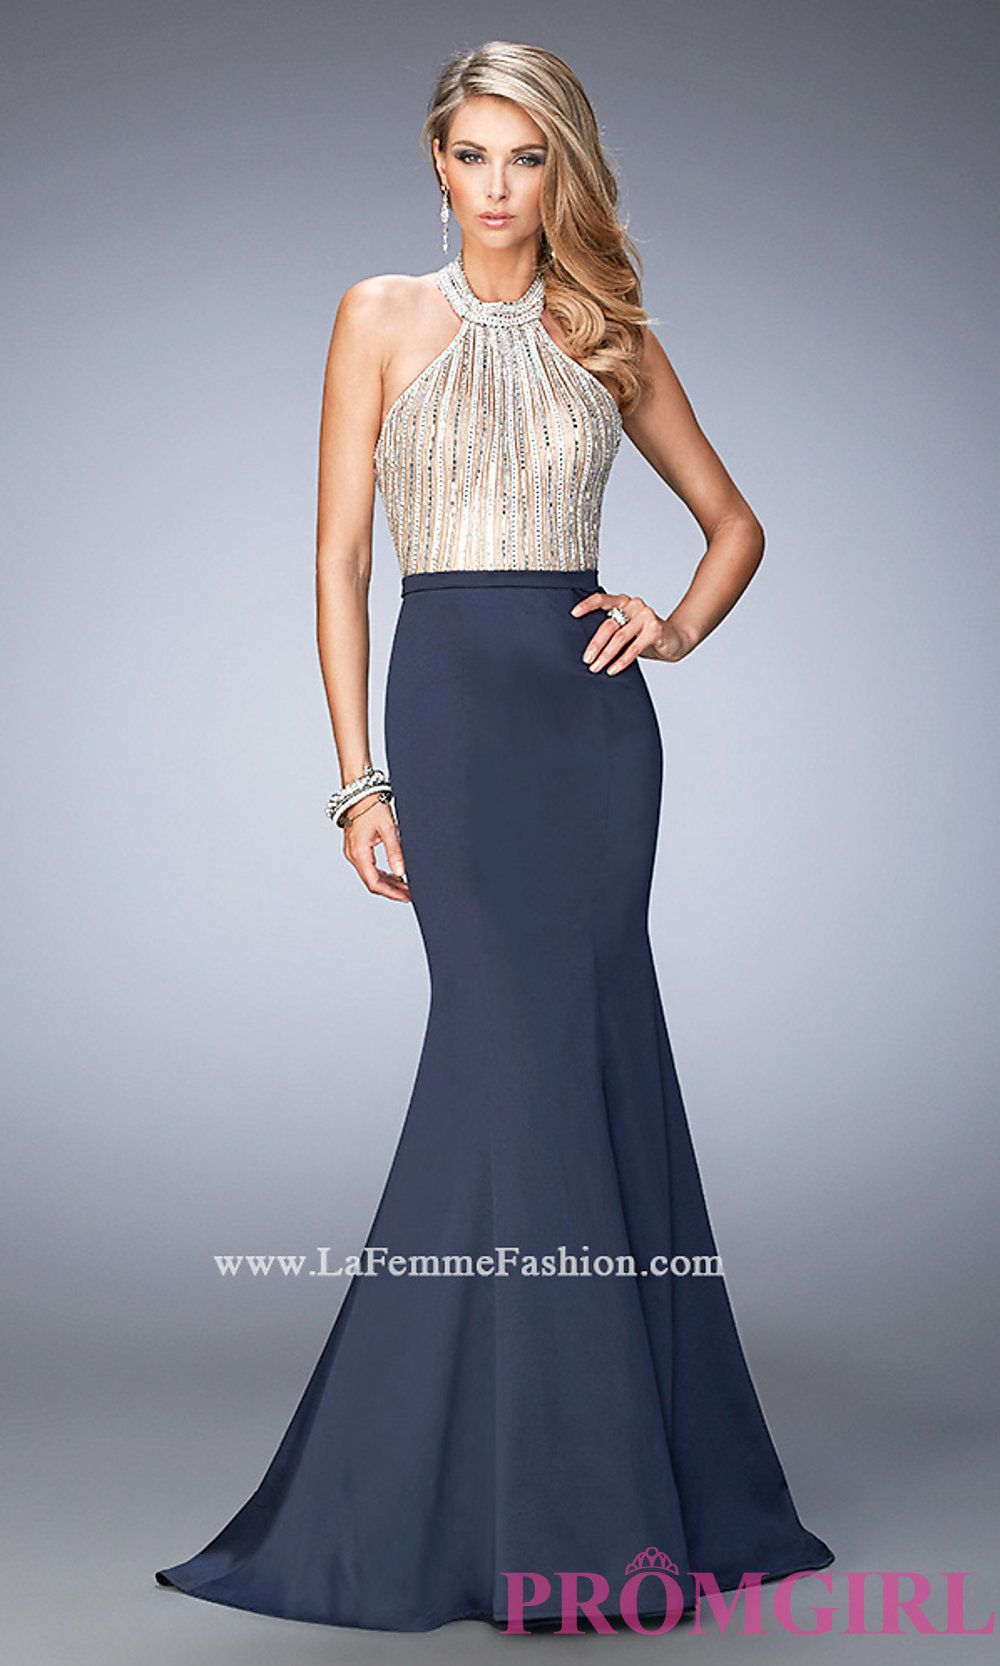 High Neck Halter Top Prom Dress by La Femme Style: LF-22177 | dress ...